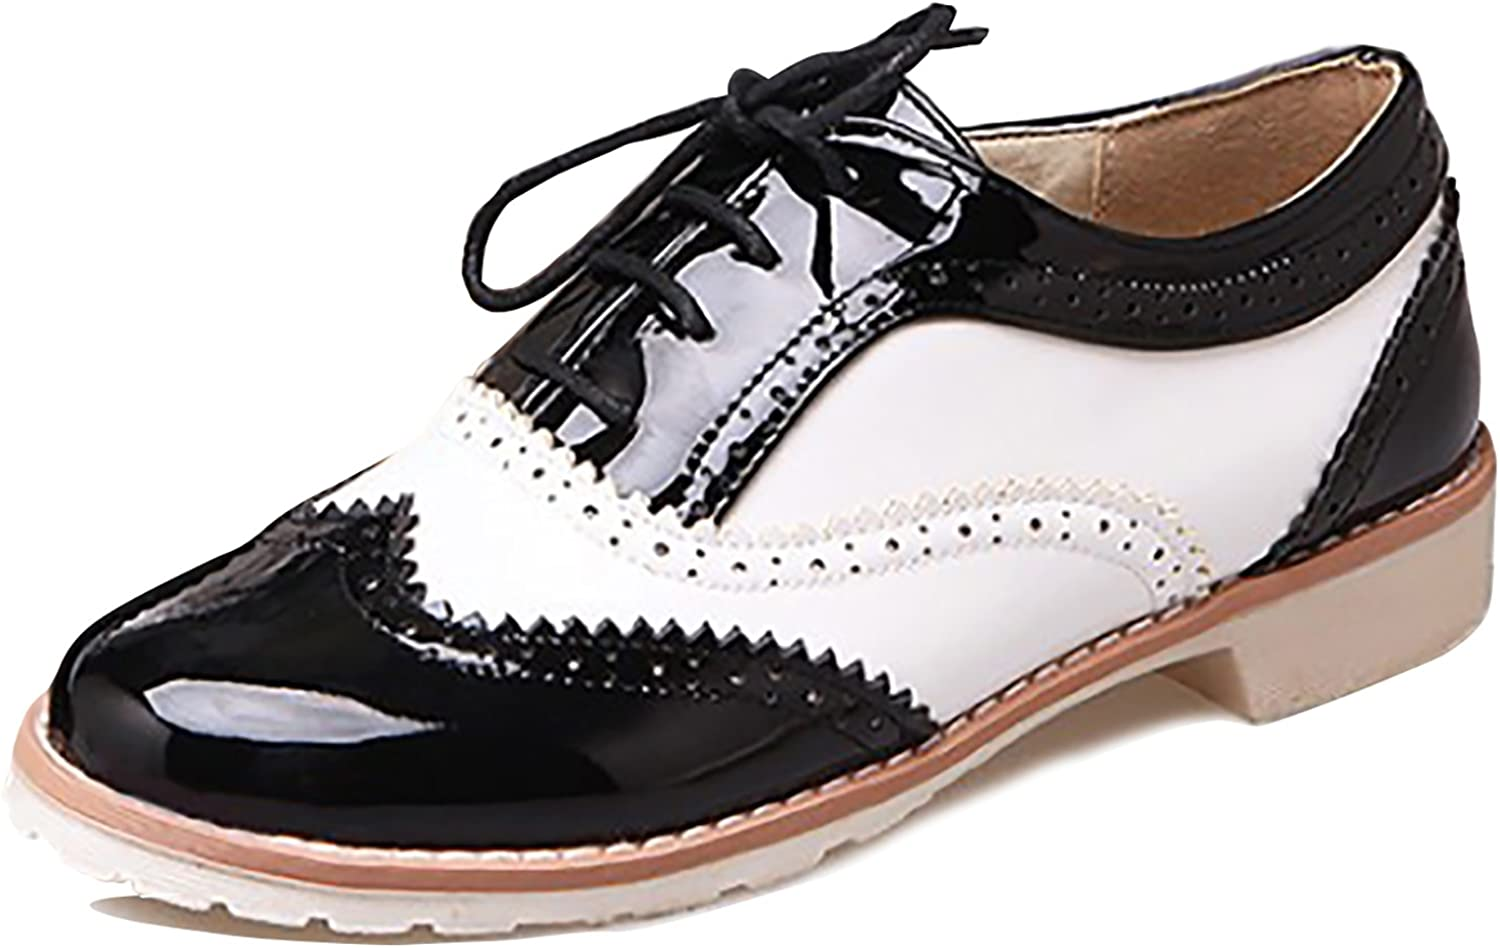 Odema Womens Womens PU Leather Oxfords Brogue Wingtip Lace up Chunky Low Heel shoes Dress Pumps Oxfords